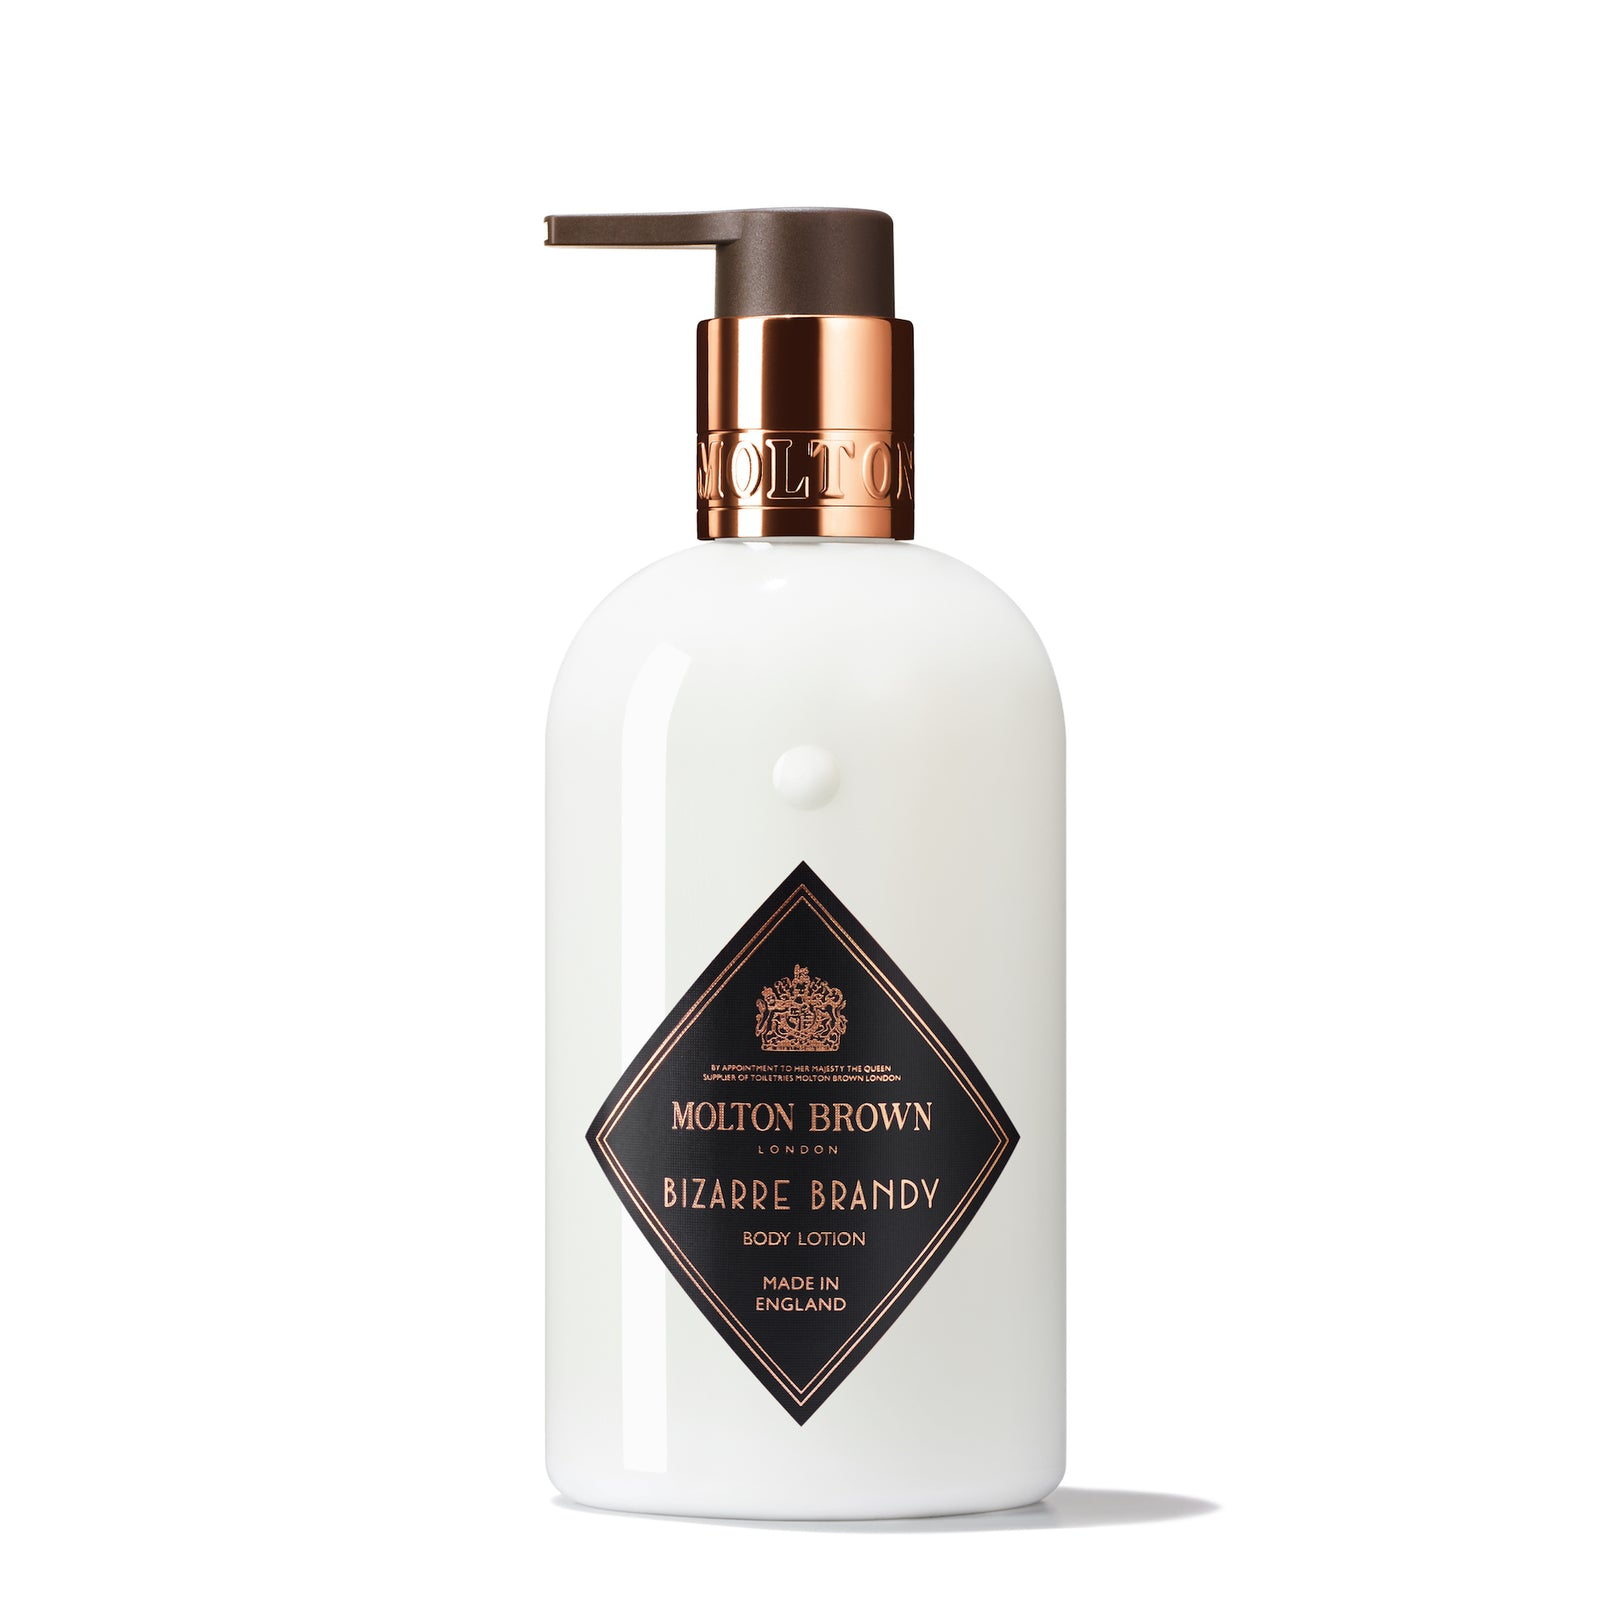 Molton Brown Bizarre Brandy Body Lotion | NYHET